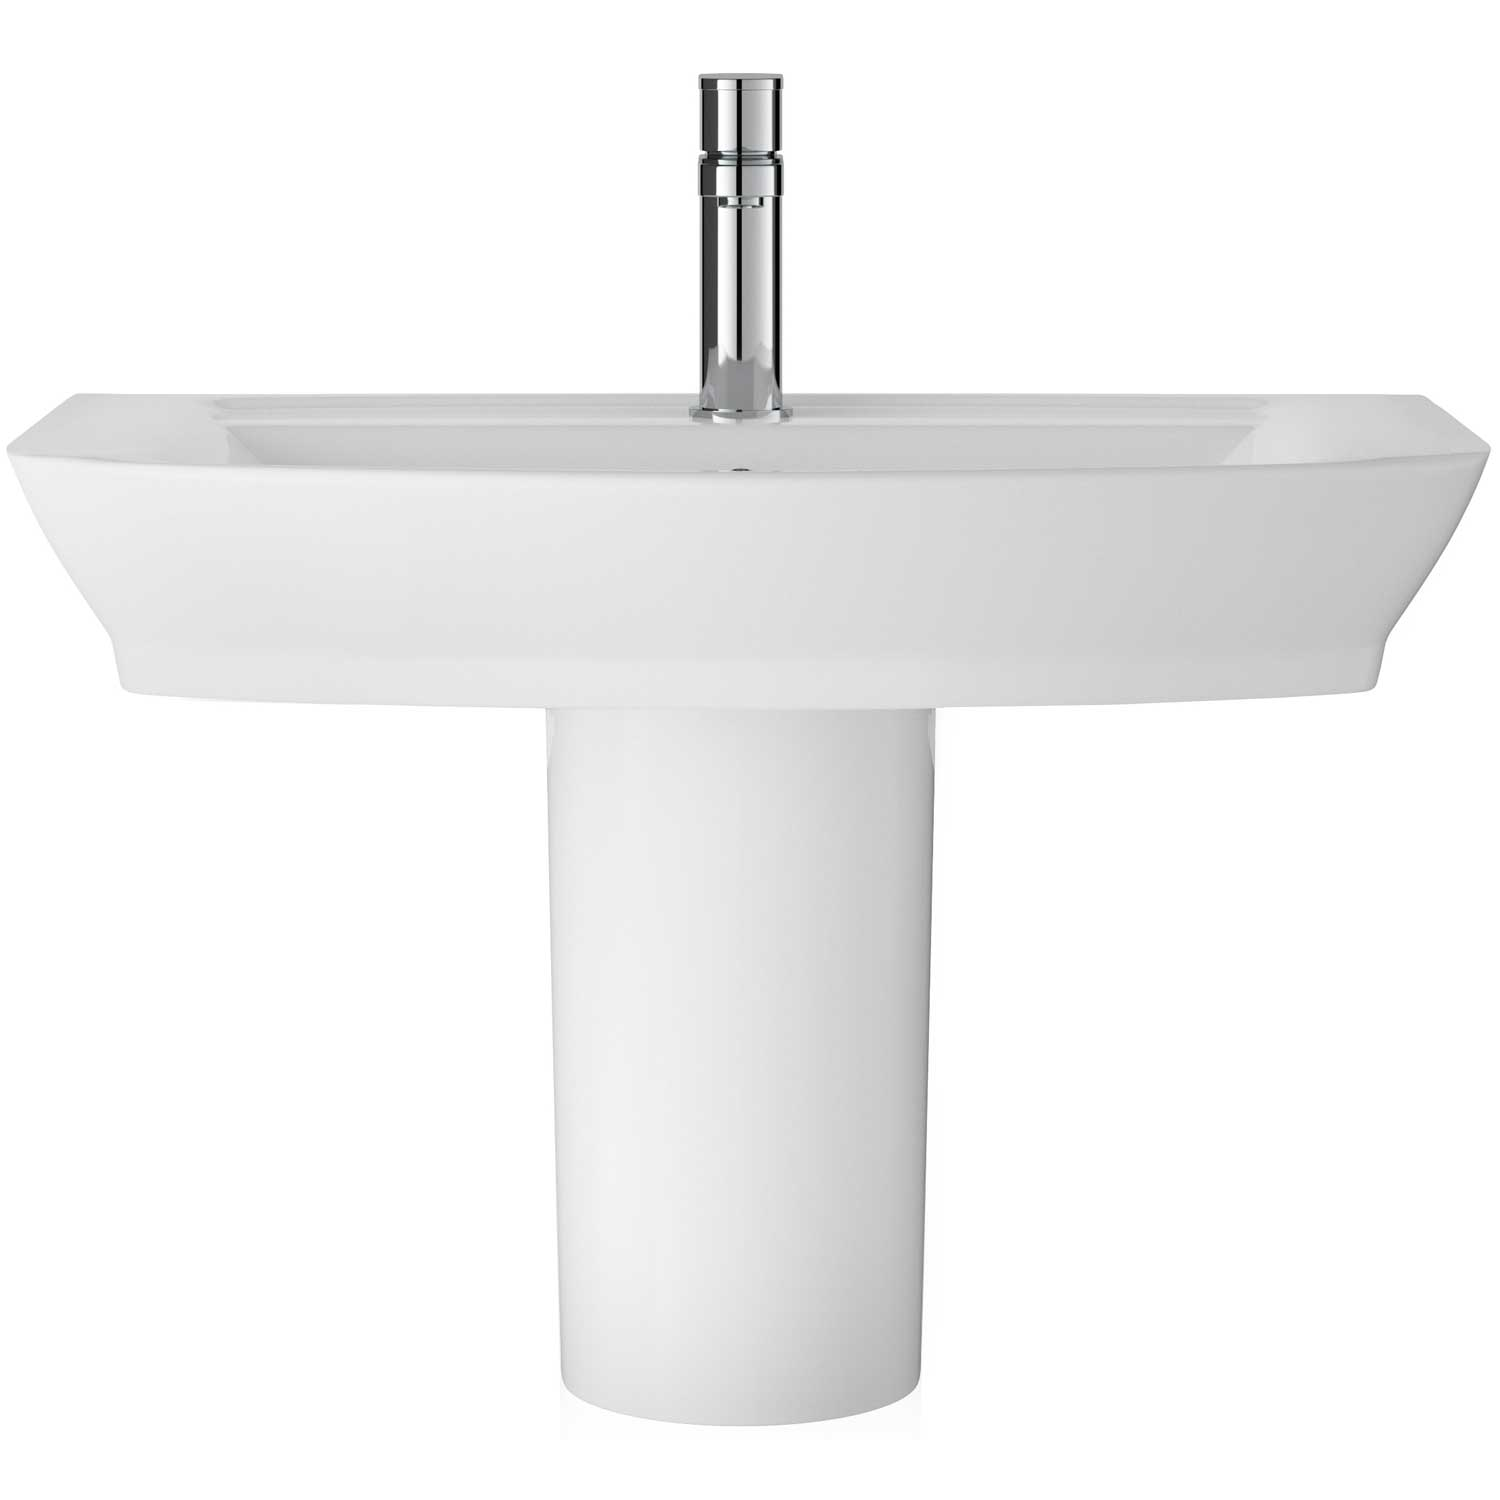 Hudson Reed Maya Basin with Semi Pedestal 550mm Wide - 1 Tap Hole